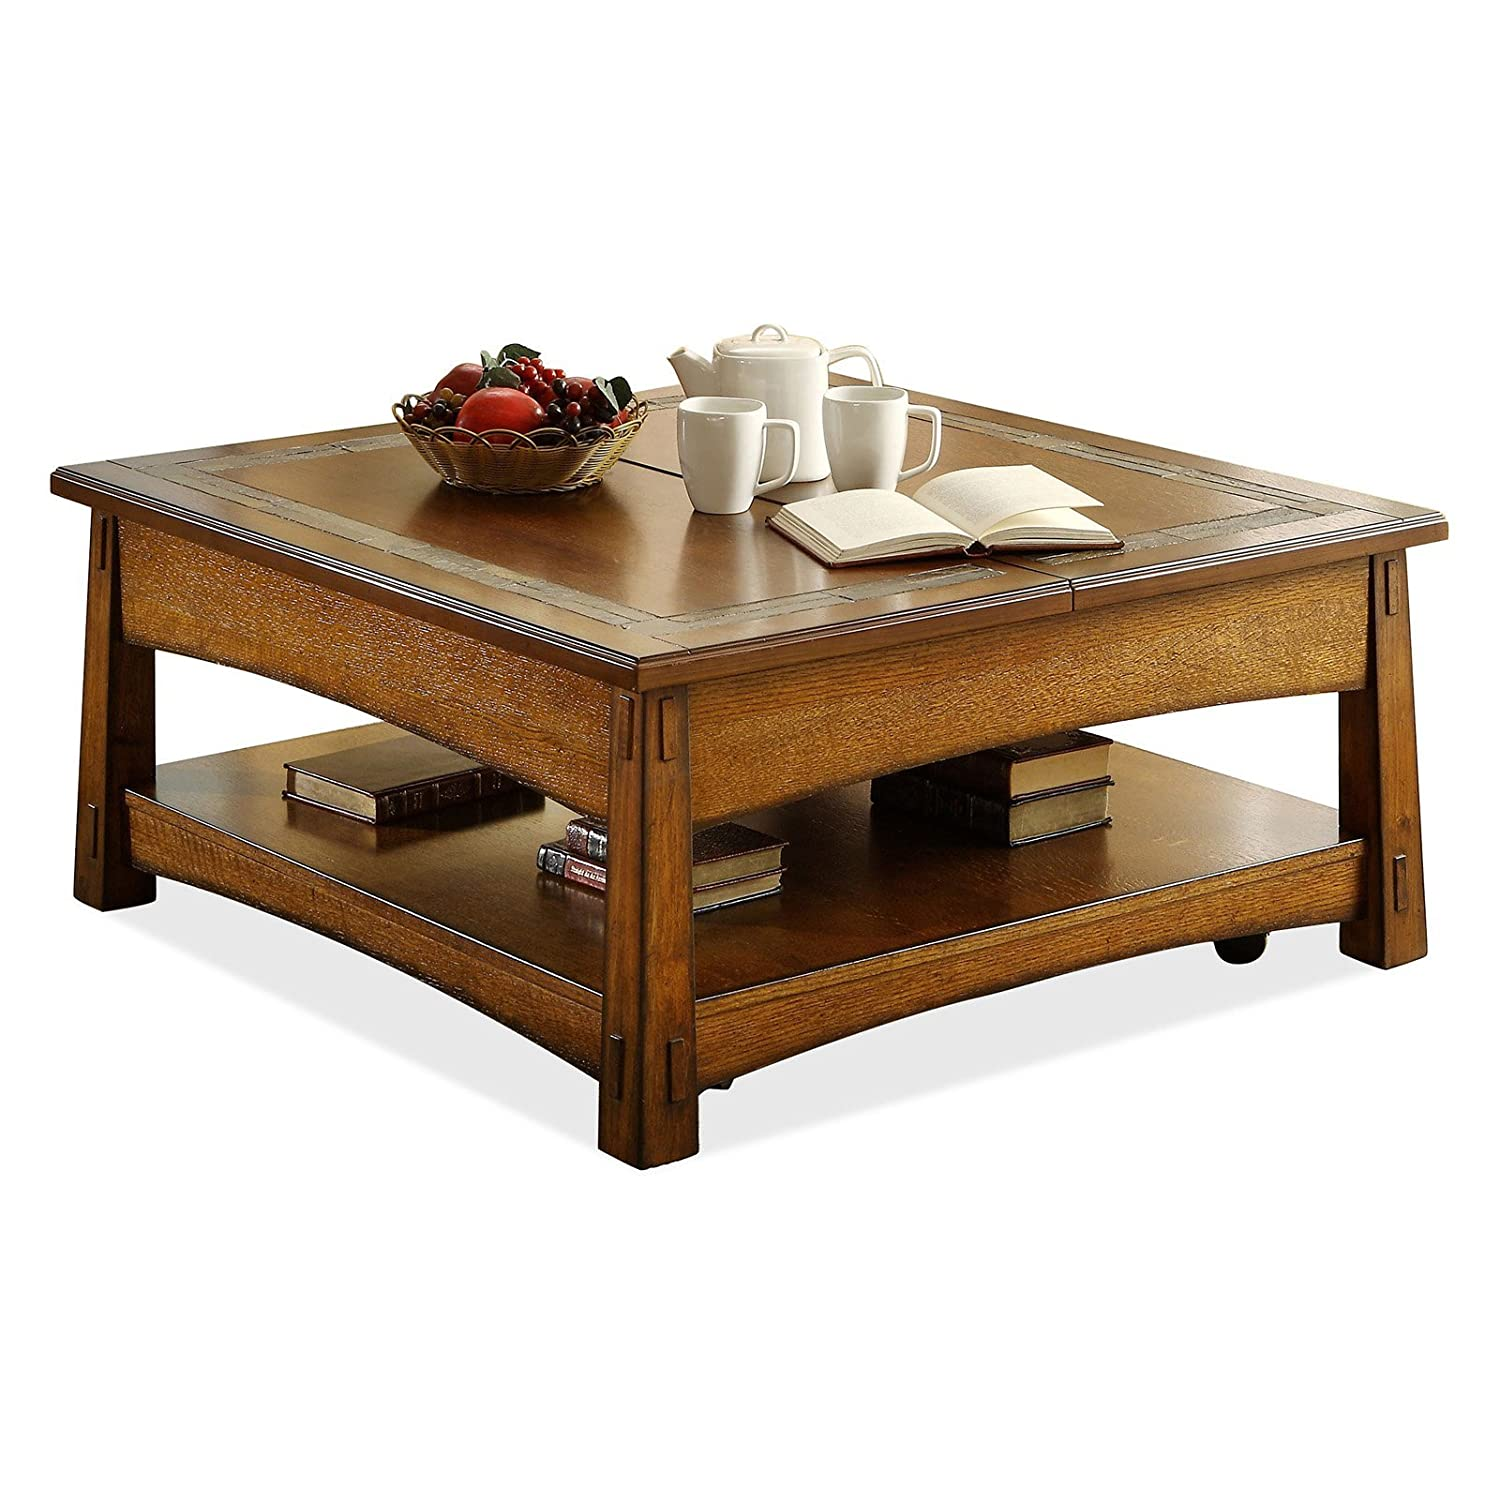 Square coffee table lift top - Square Coffee Table Lift Top 37